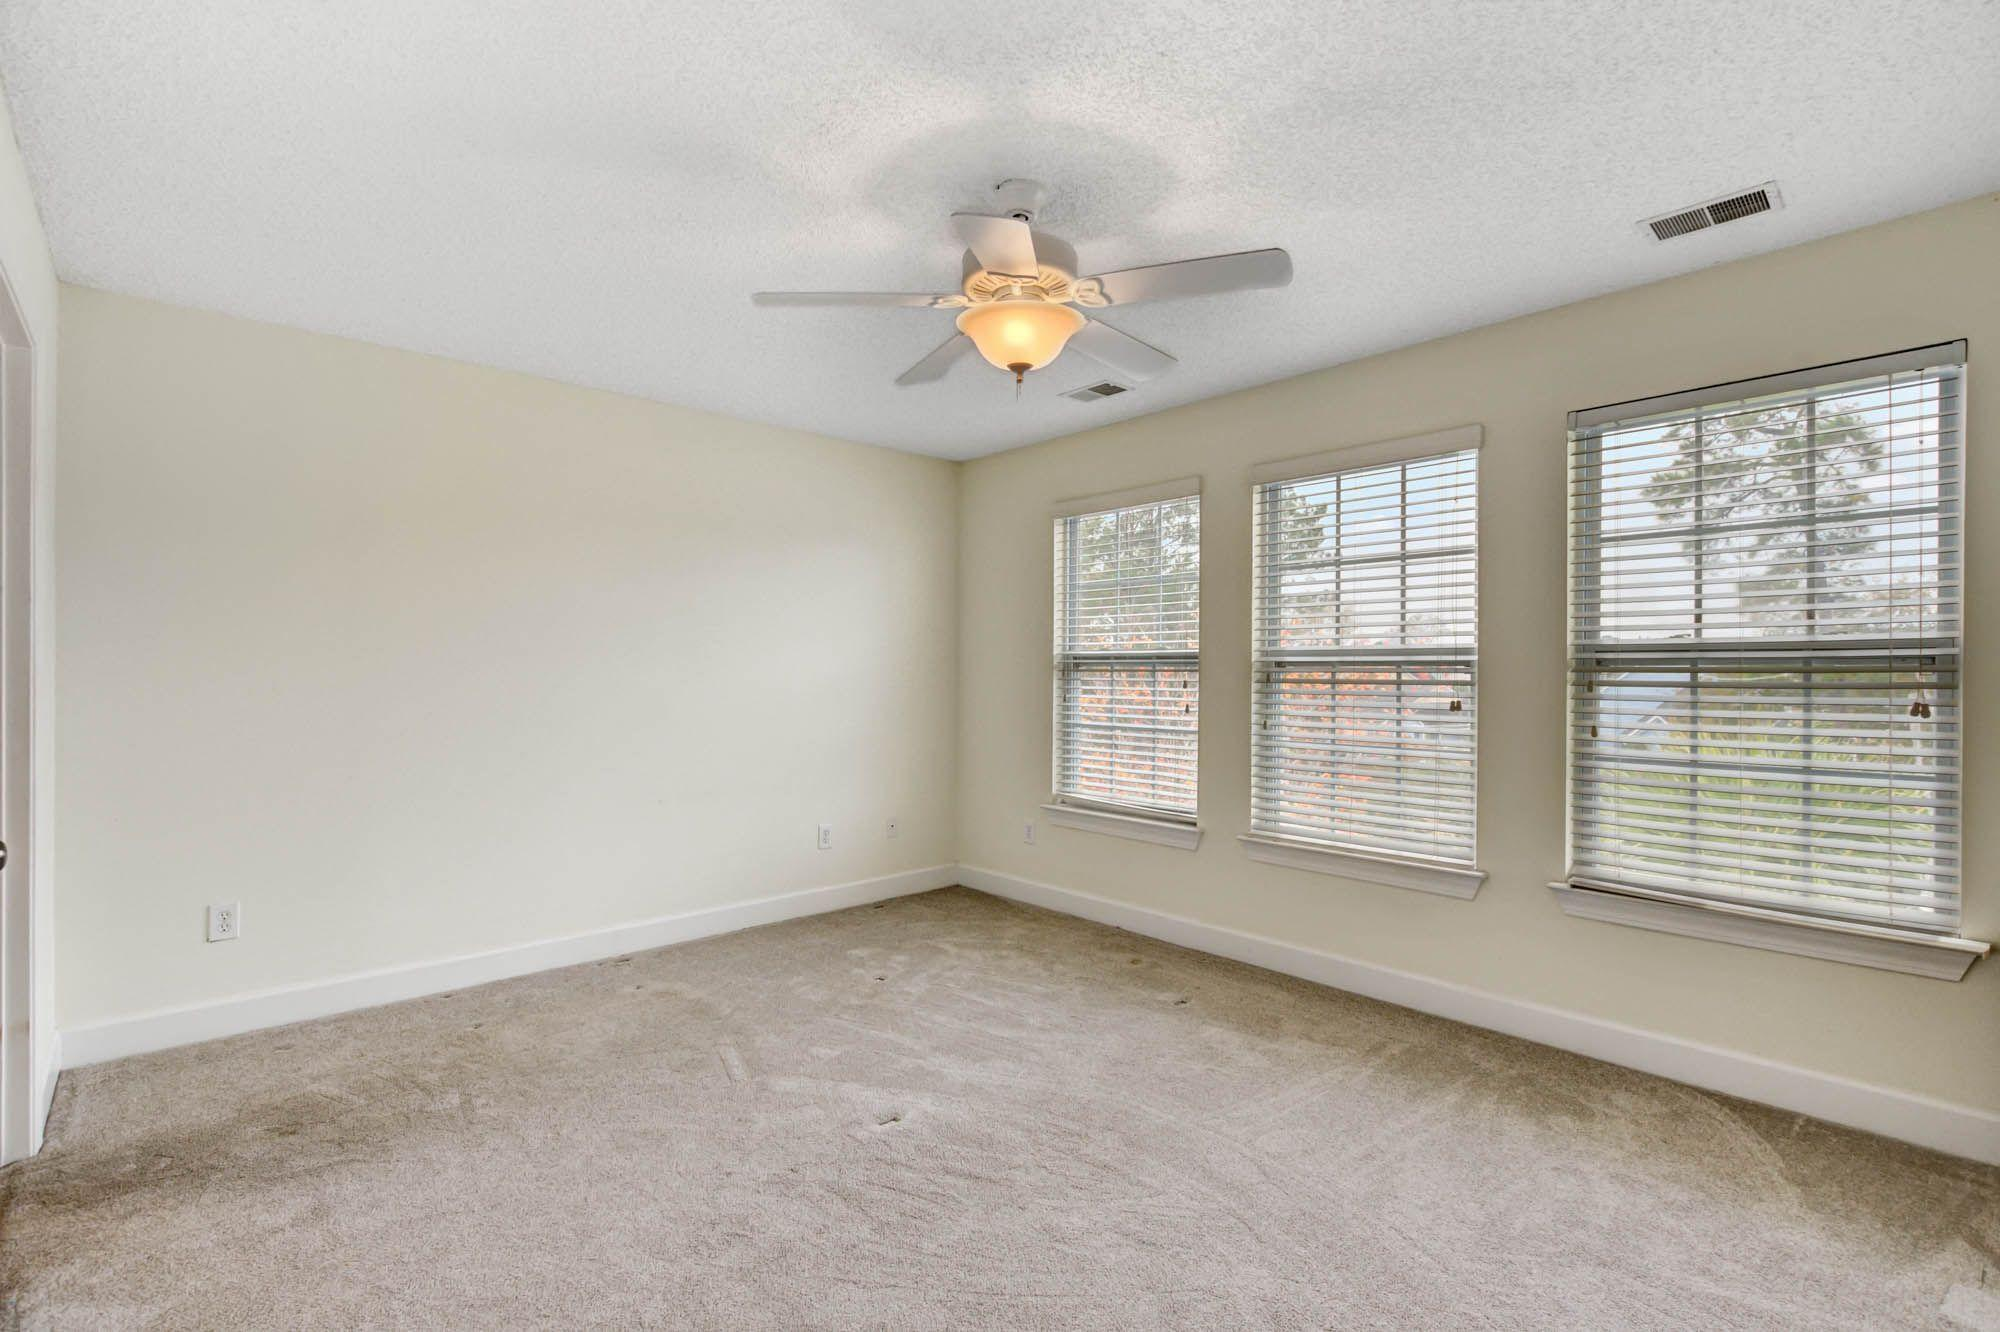 Whitney Lake Condos For Sale - 2926 Sugarberry, Johns Island, SC - 1